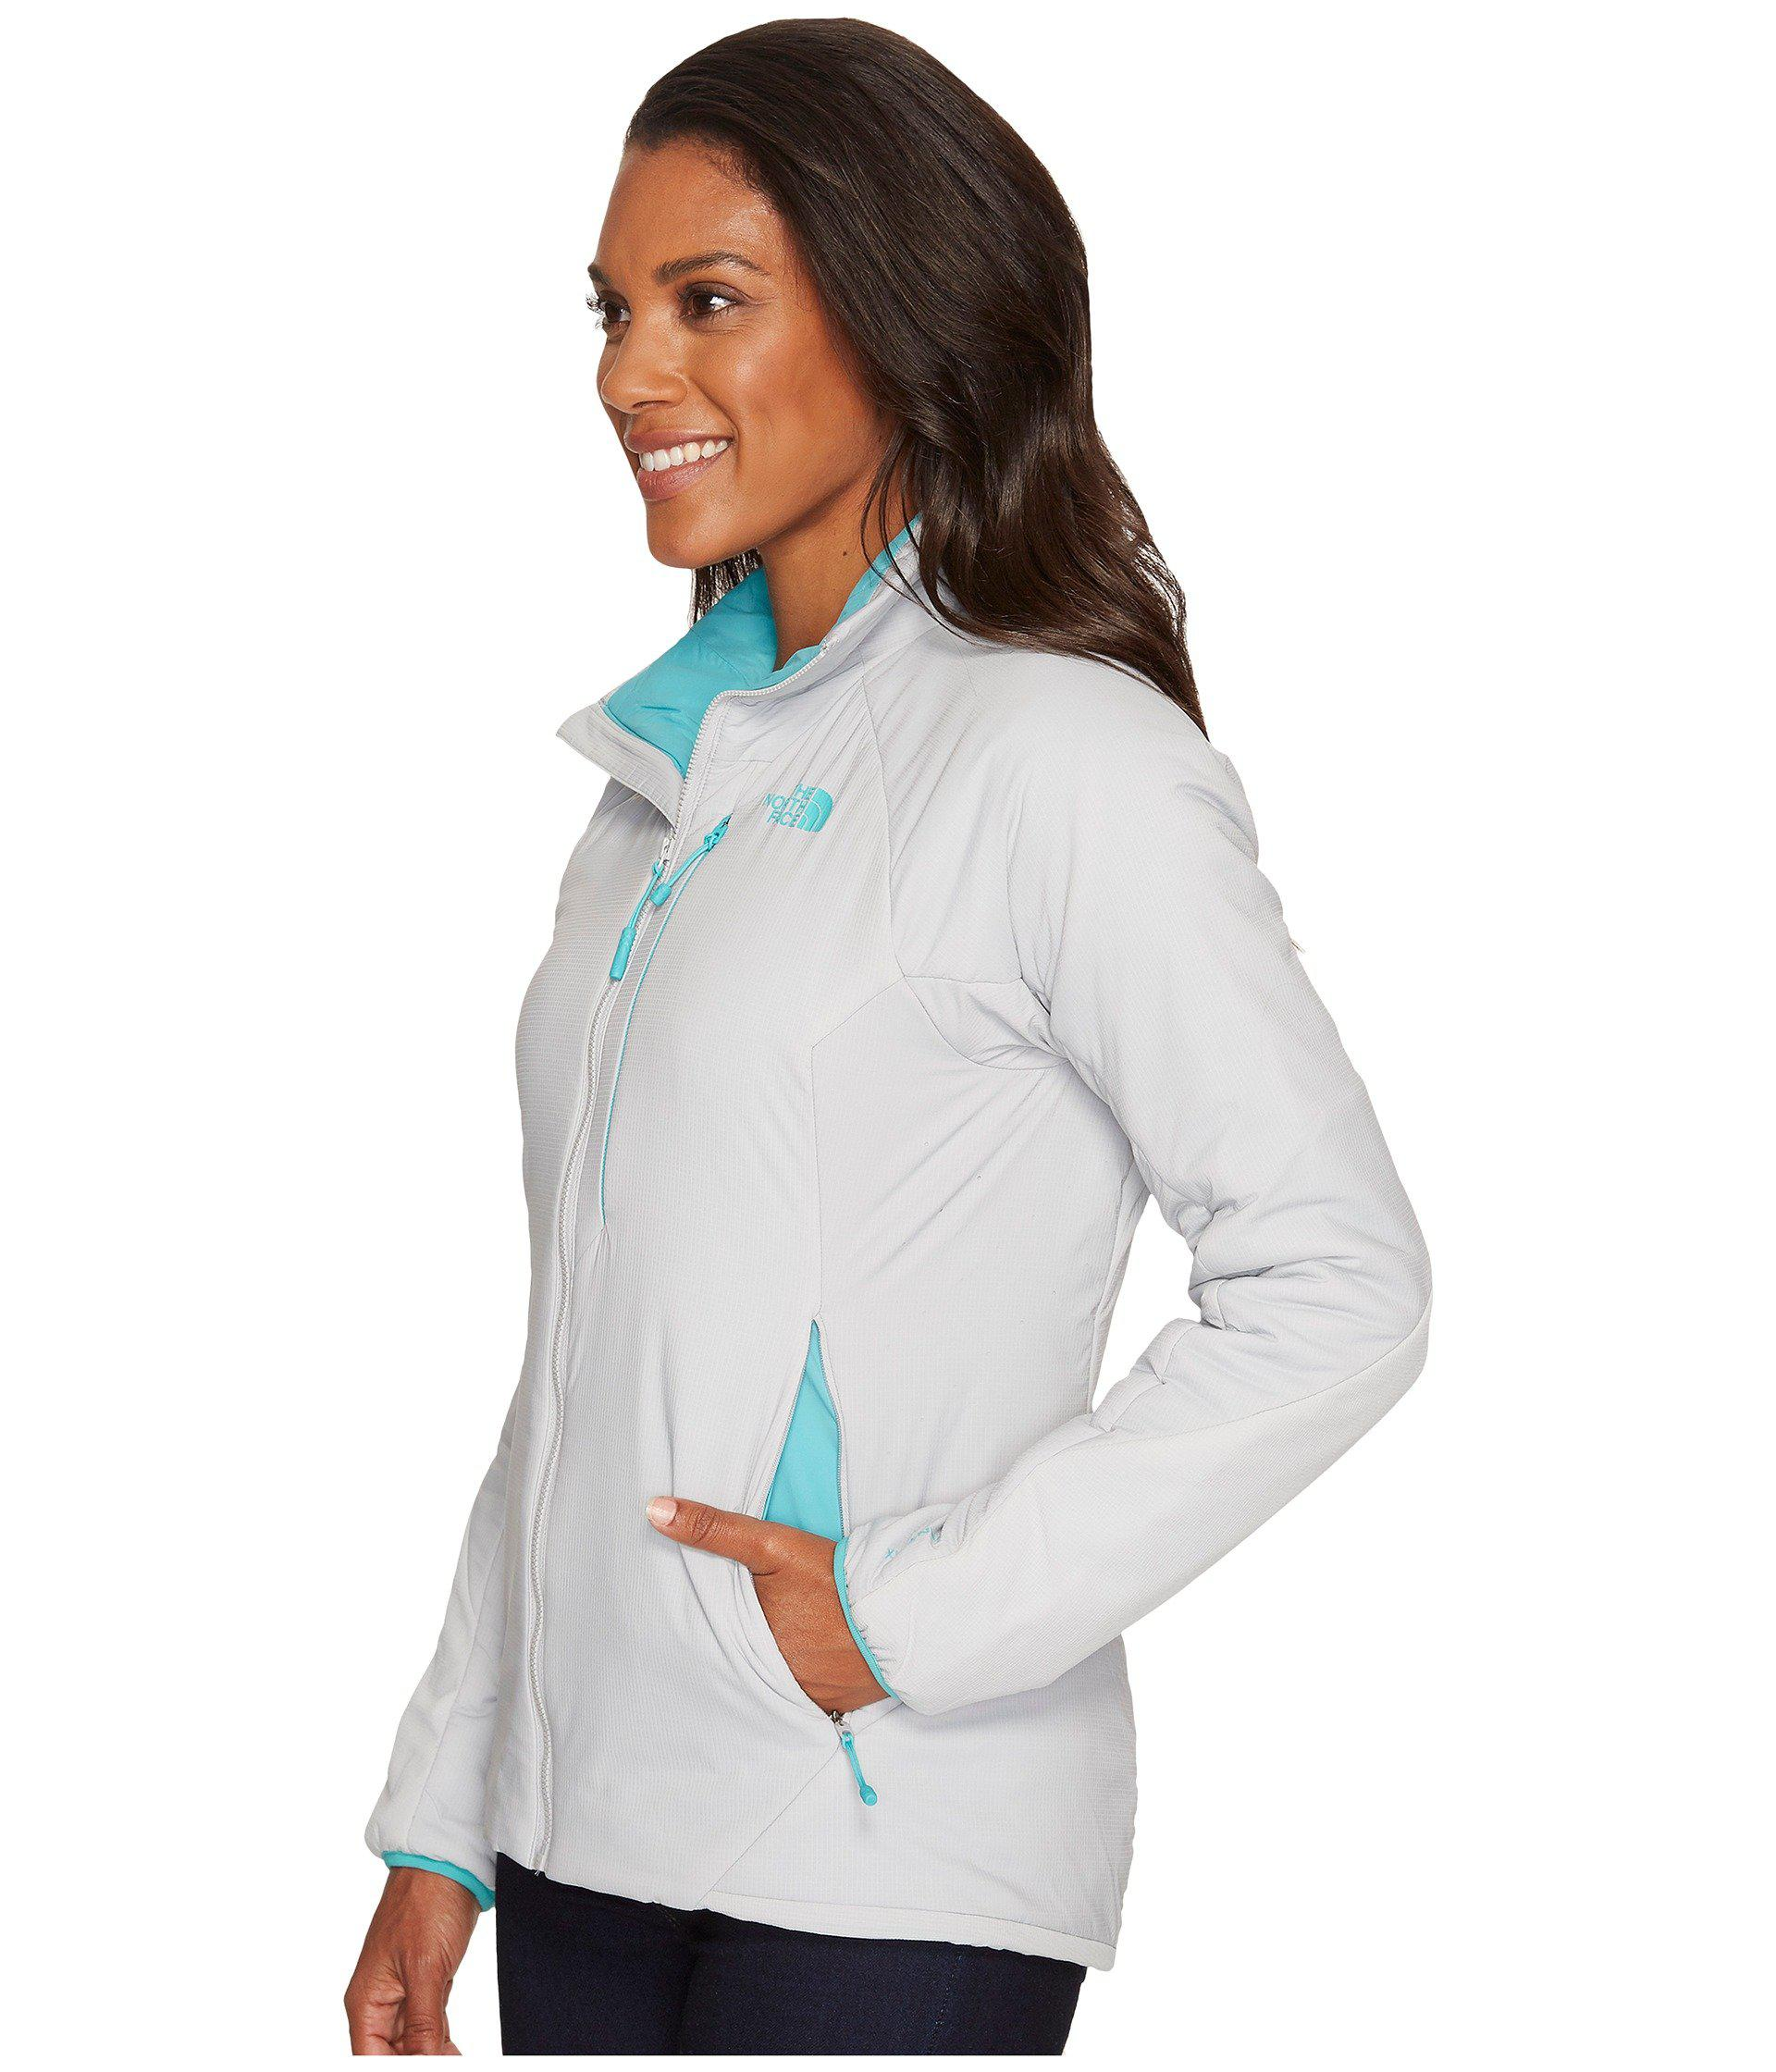 59c536bda183 Lyst - The North Face Ventrix Jacket in Blue - Save 43%